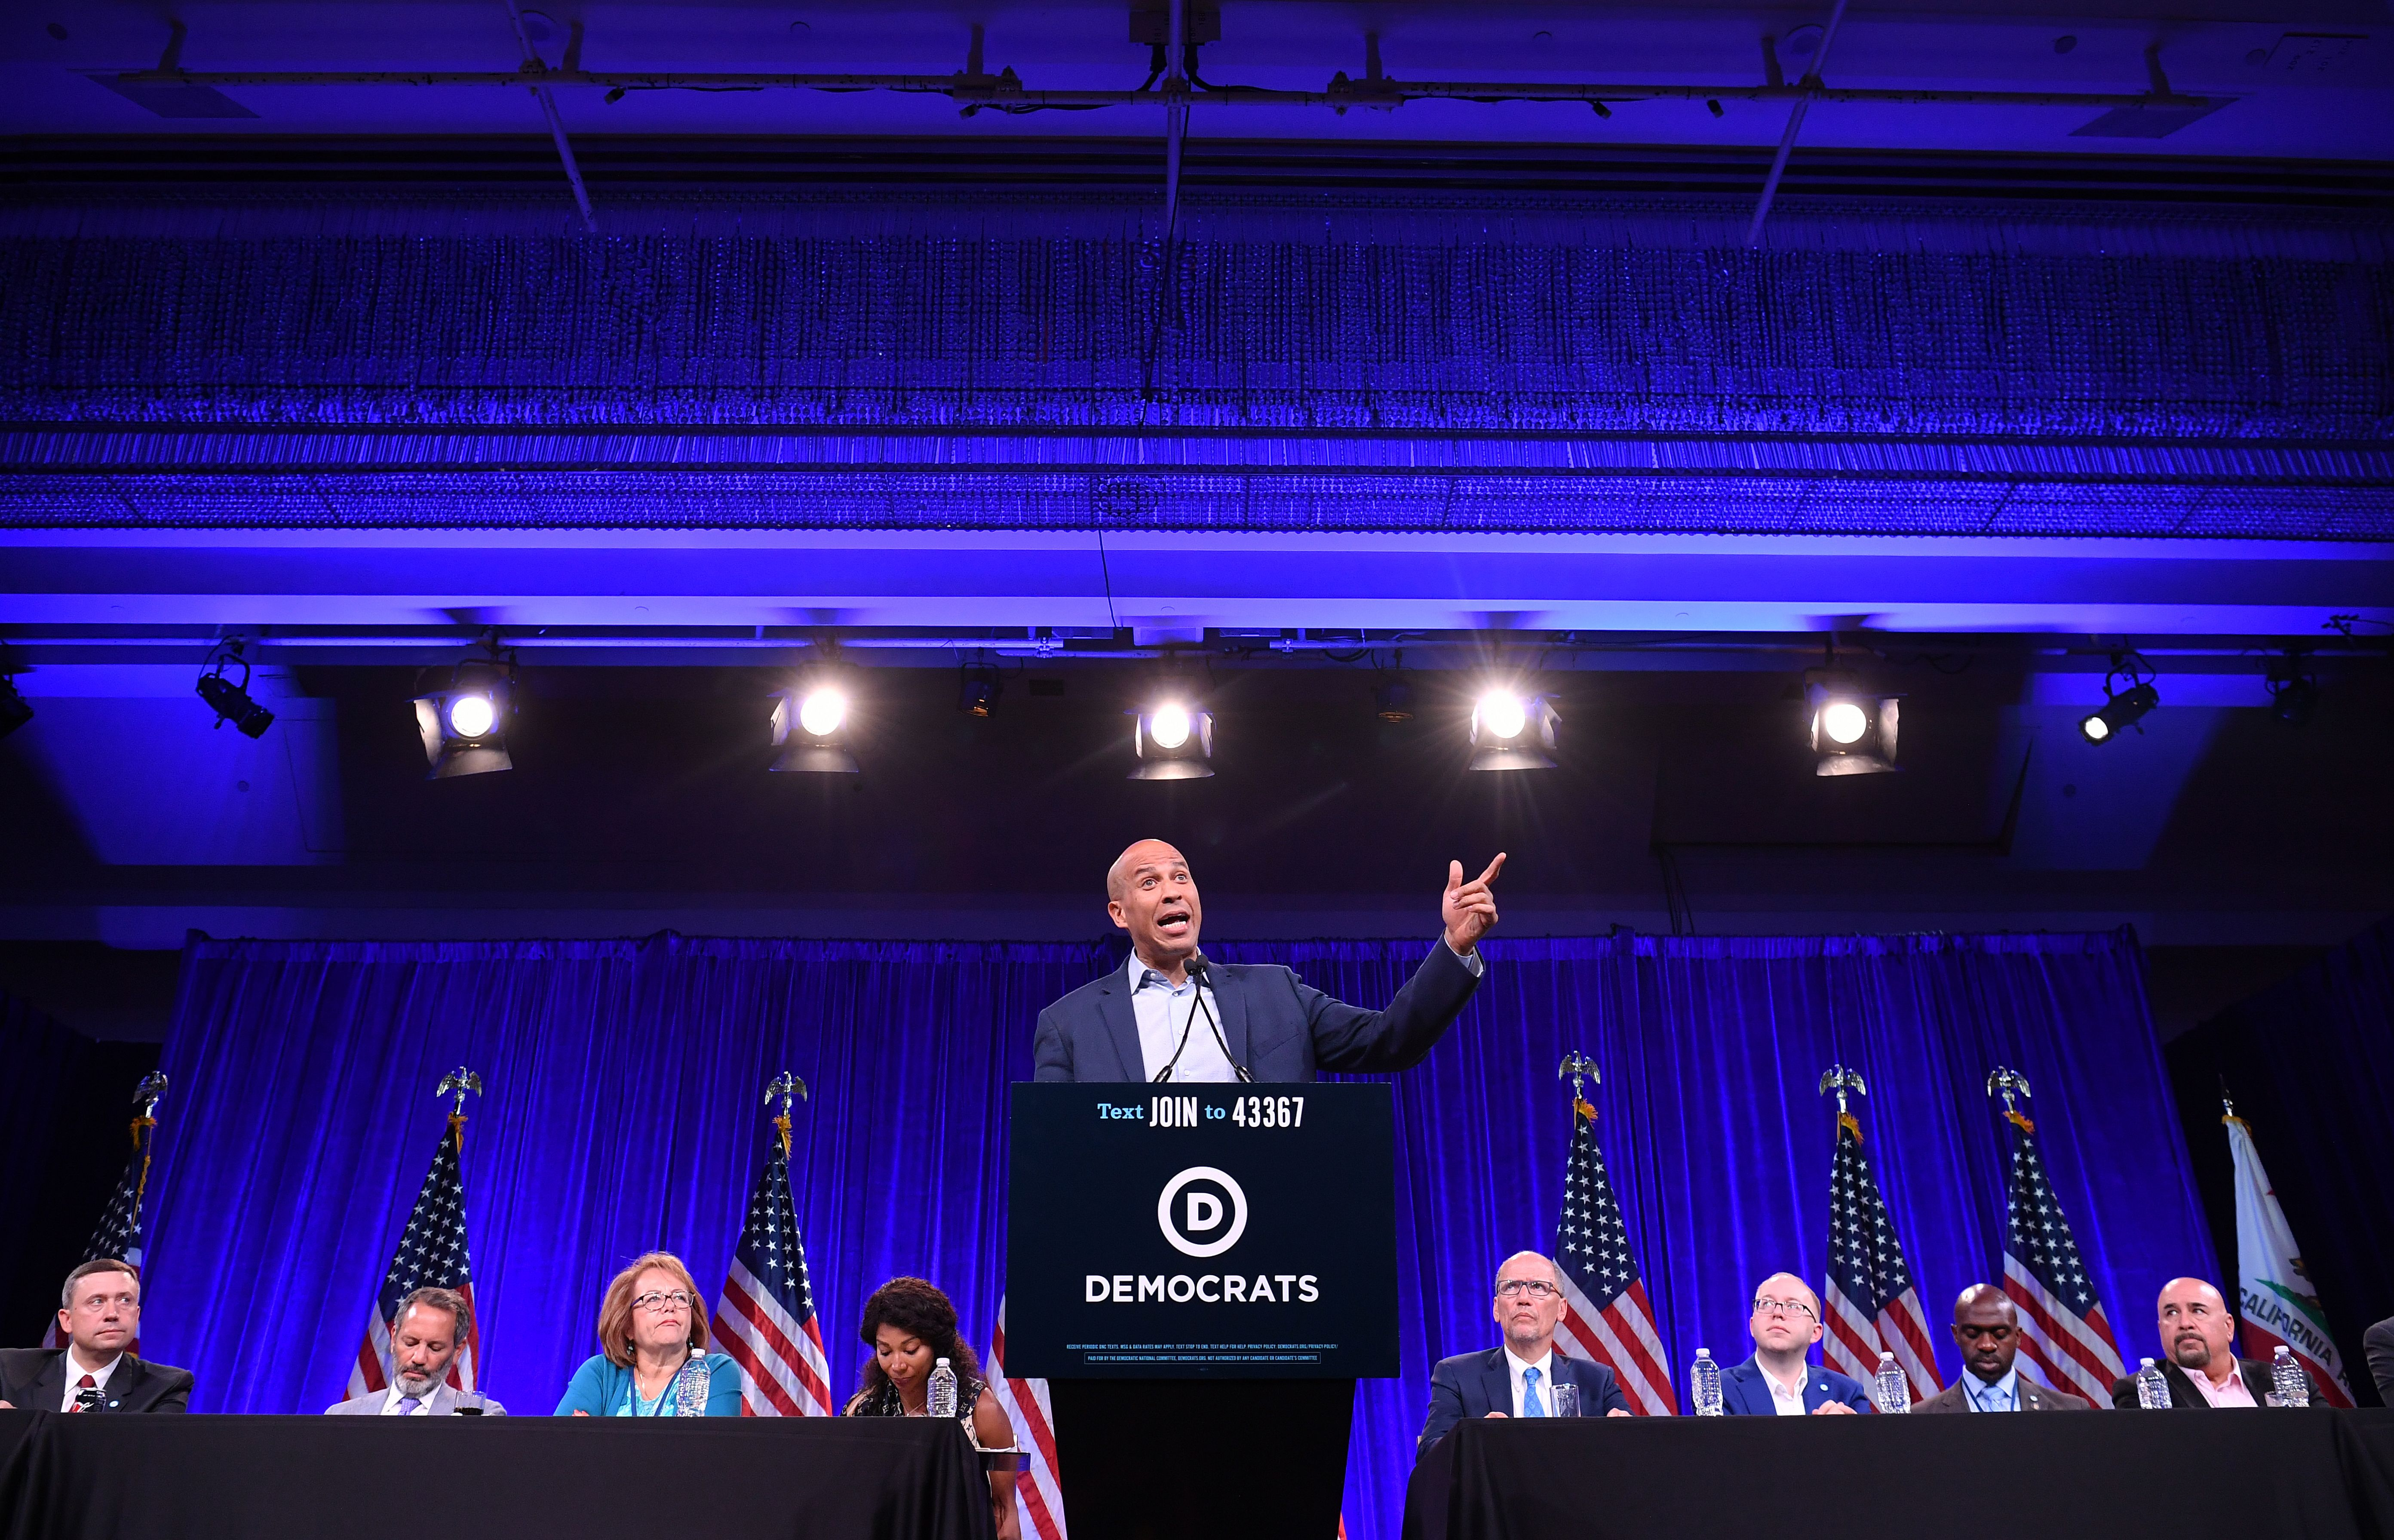 Booker stands at a podium with the Democratic Party logo, in front of party leaders and a row of American flags.